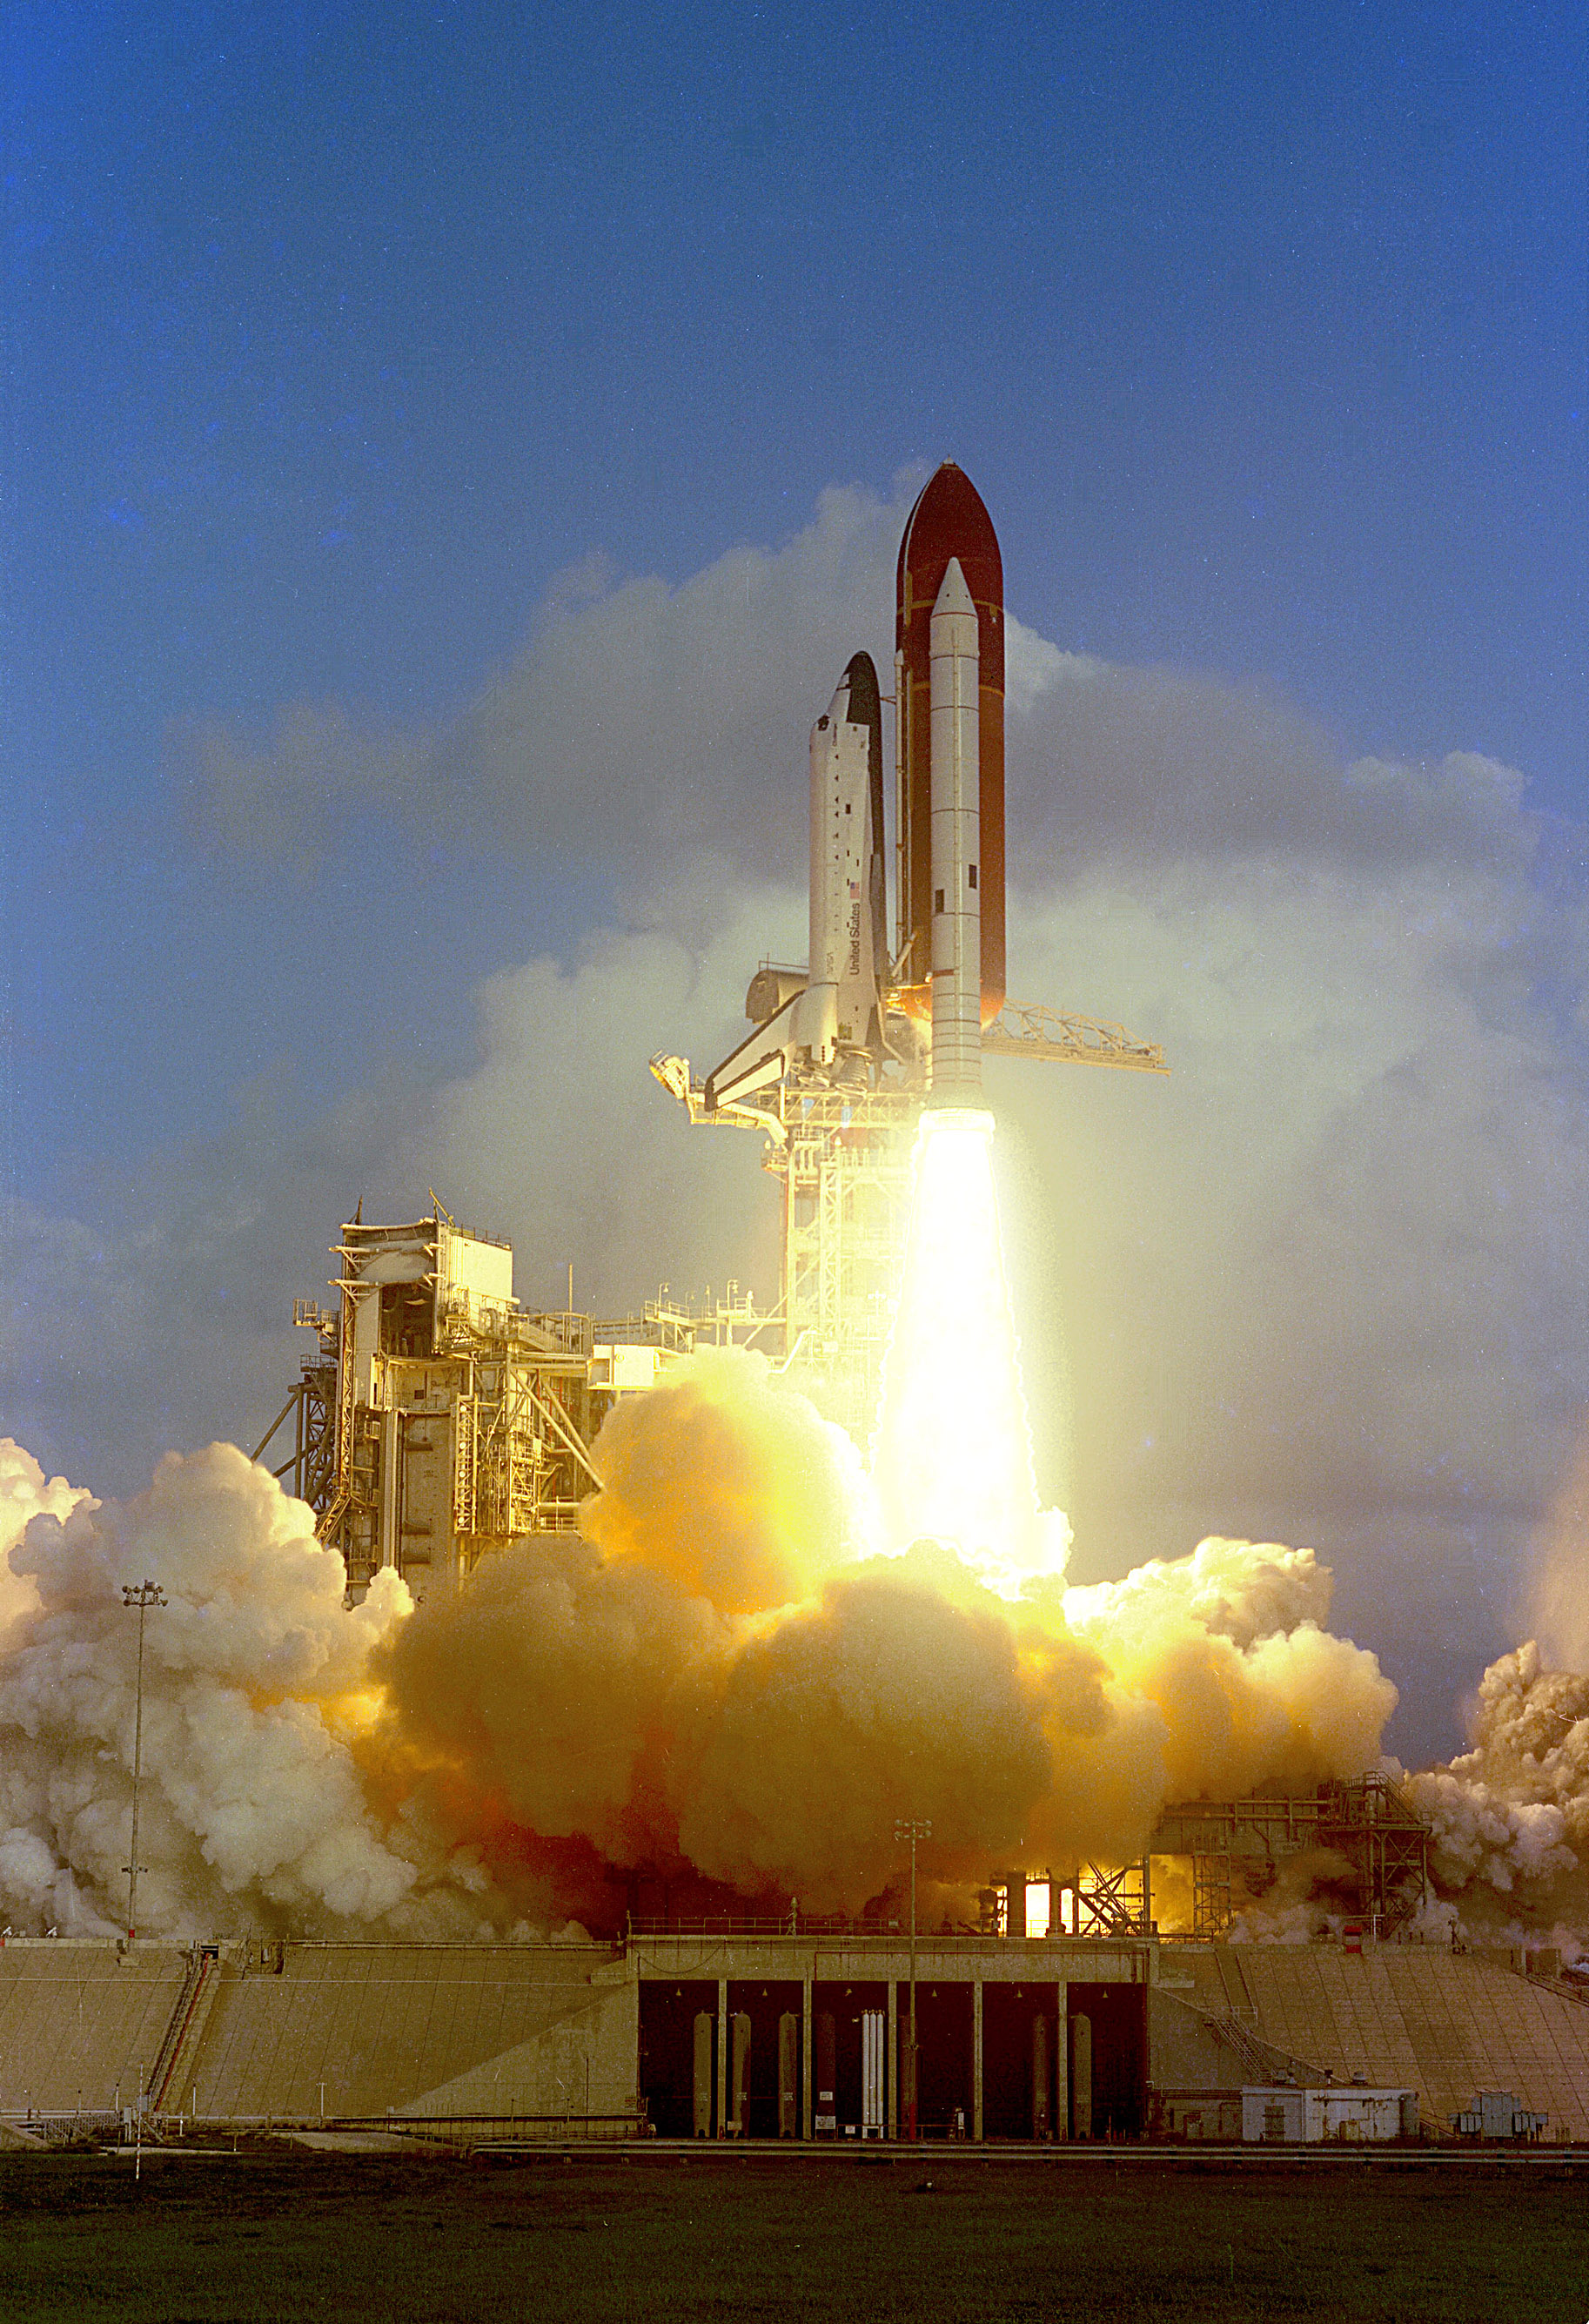 space shuttle challenger impact on america - photo #26